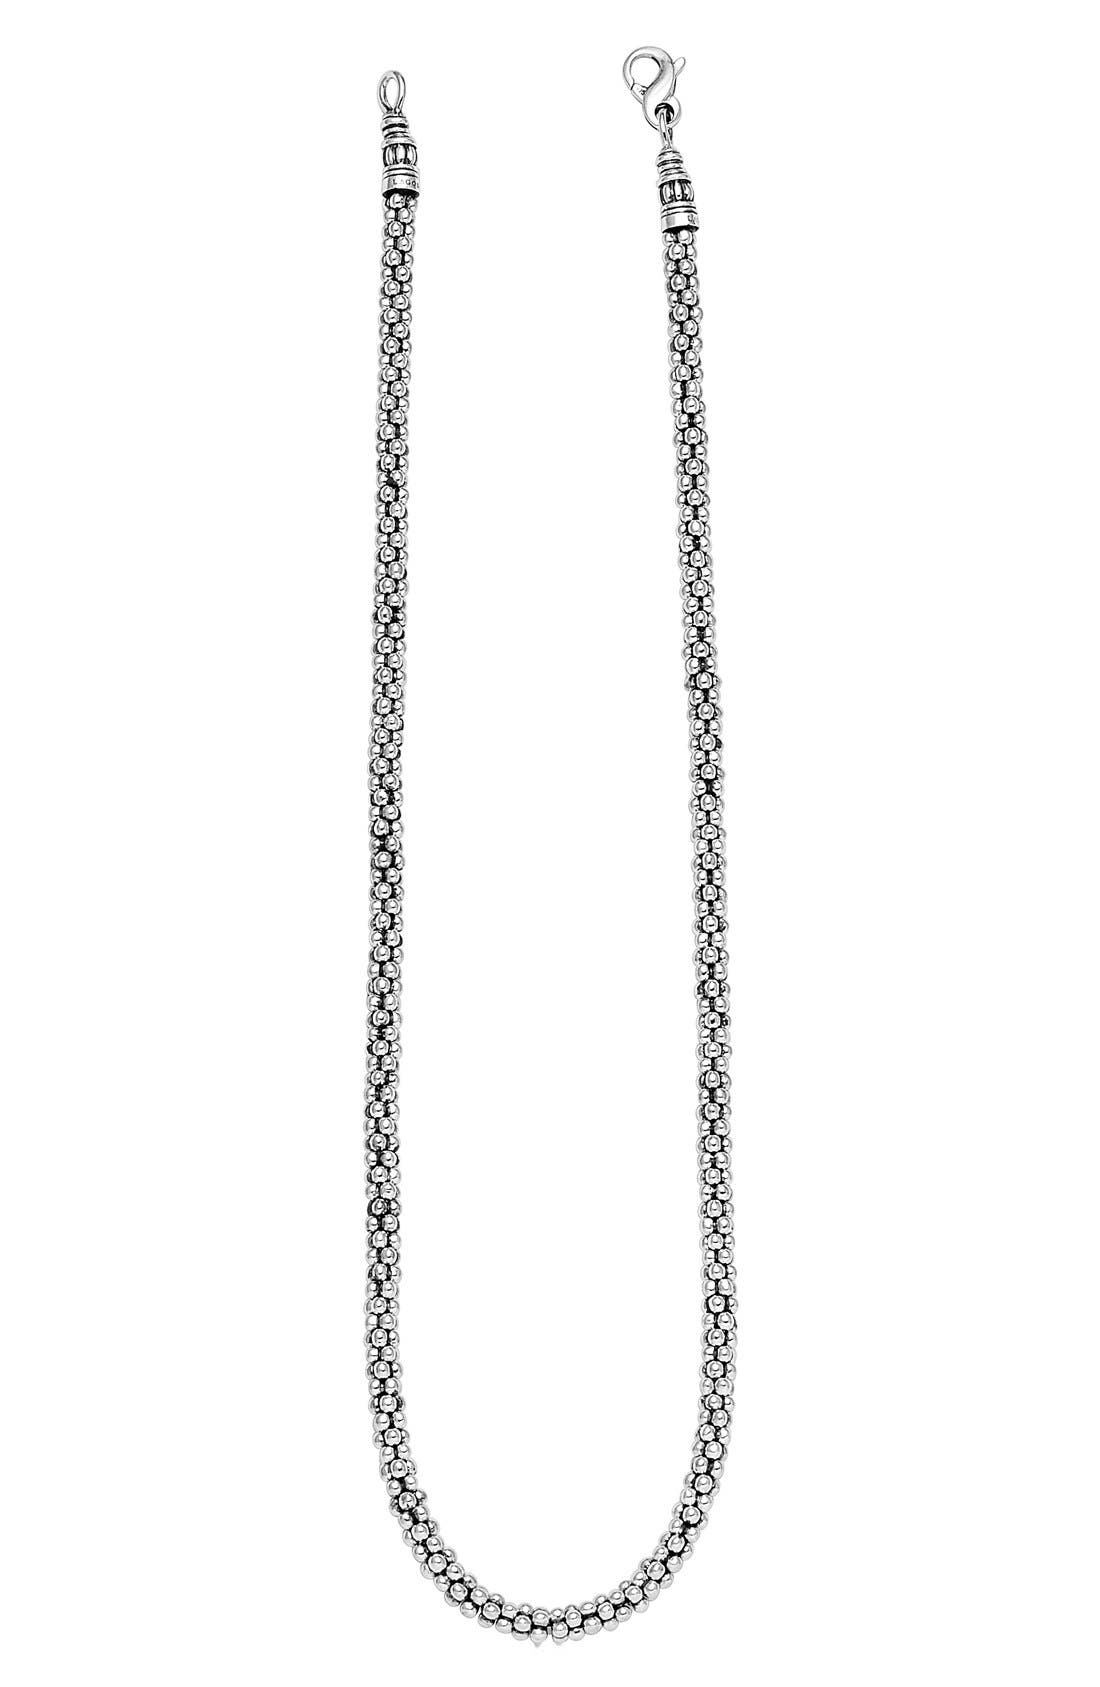 Main Image - LAGOS Sterling Silver 4mm Caviar Chain Necklace